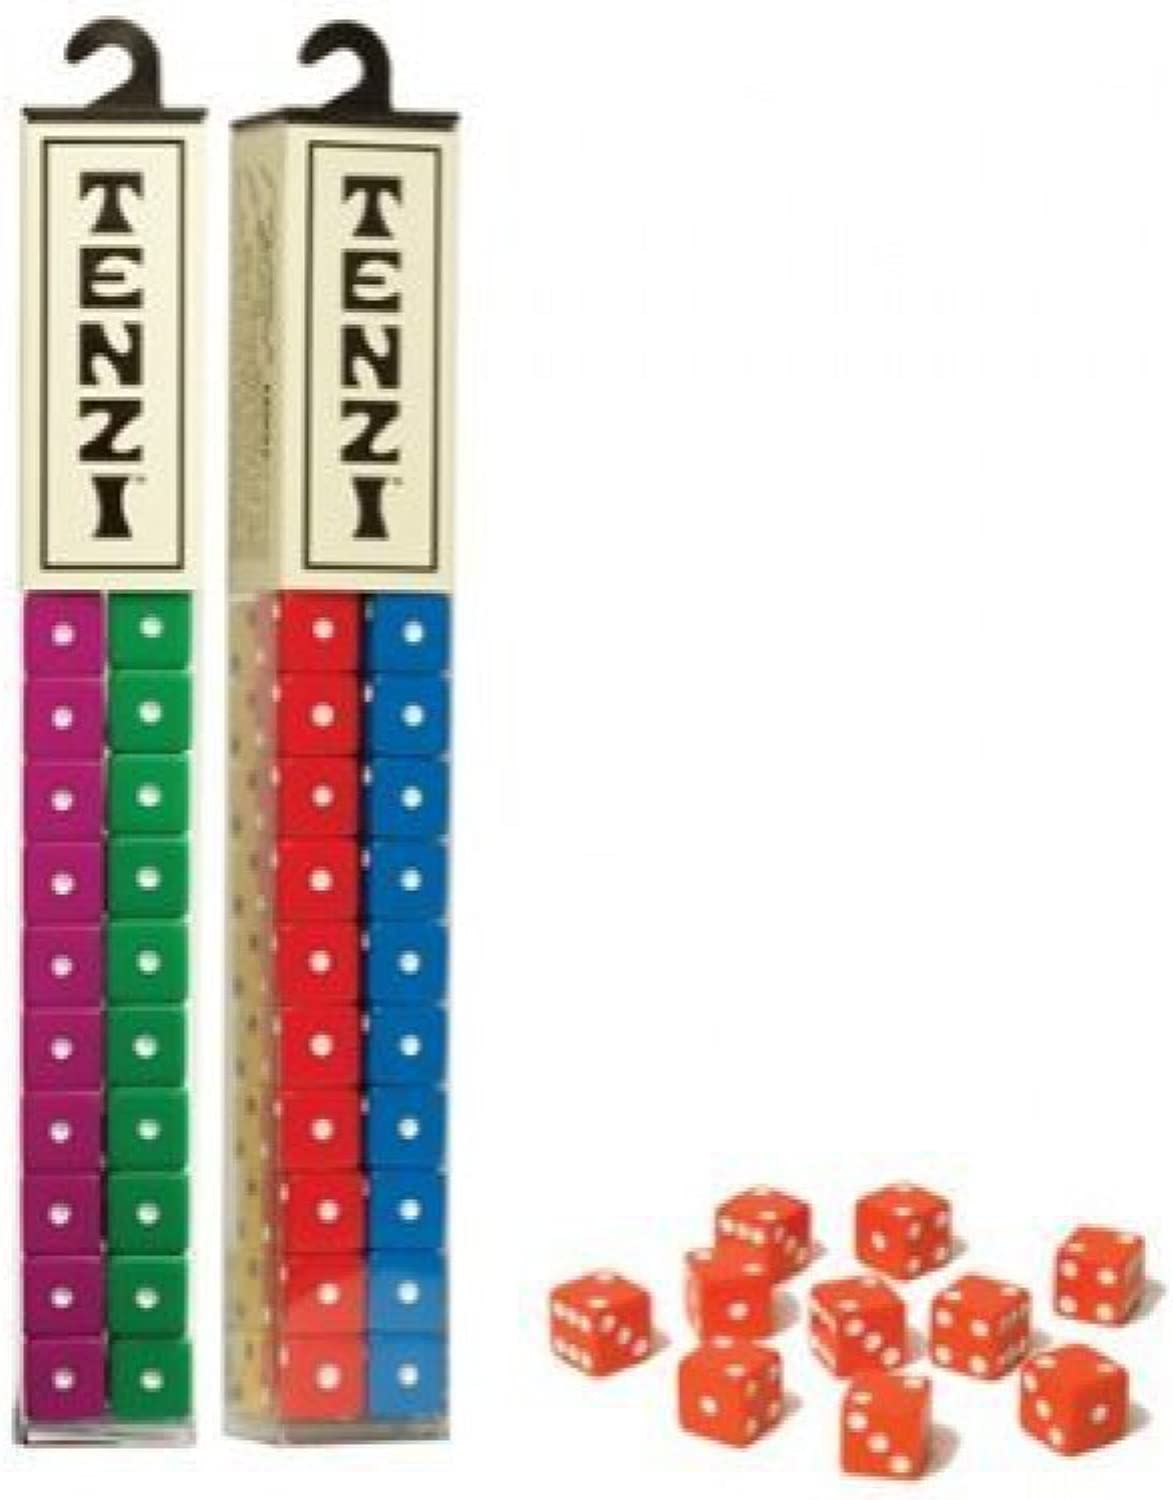 Tenzi for 8 Players  Assorted colors  8 Sets of Ten Dice by Tenzi